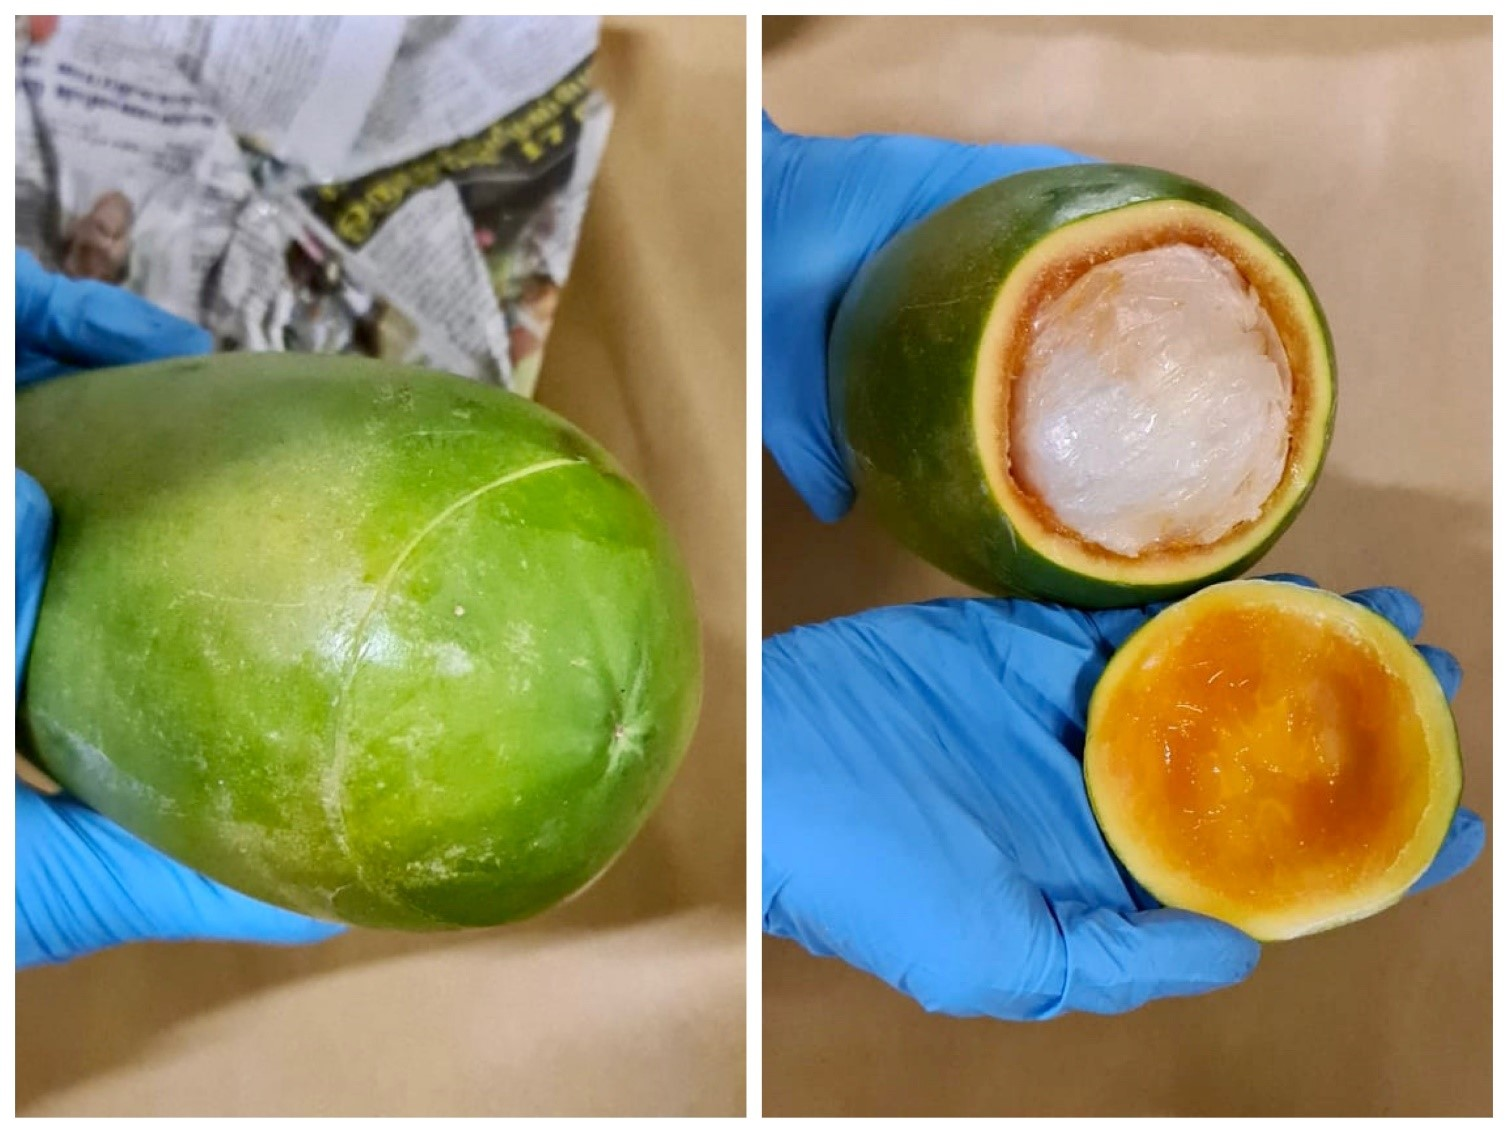 Photos 3 and 4: A papaya used to conceal 'Ice' and ketamine, seized from a vehicle in the vicinity of River Valley Road on 17 September 2020